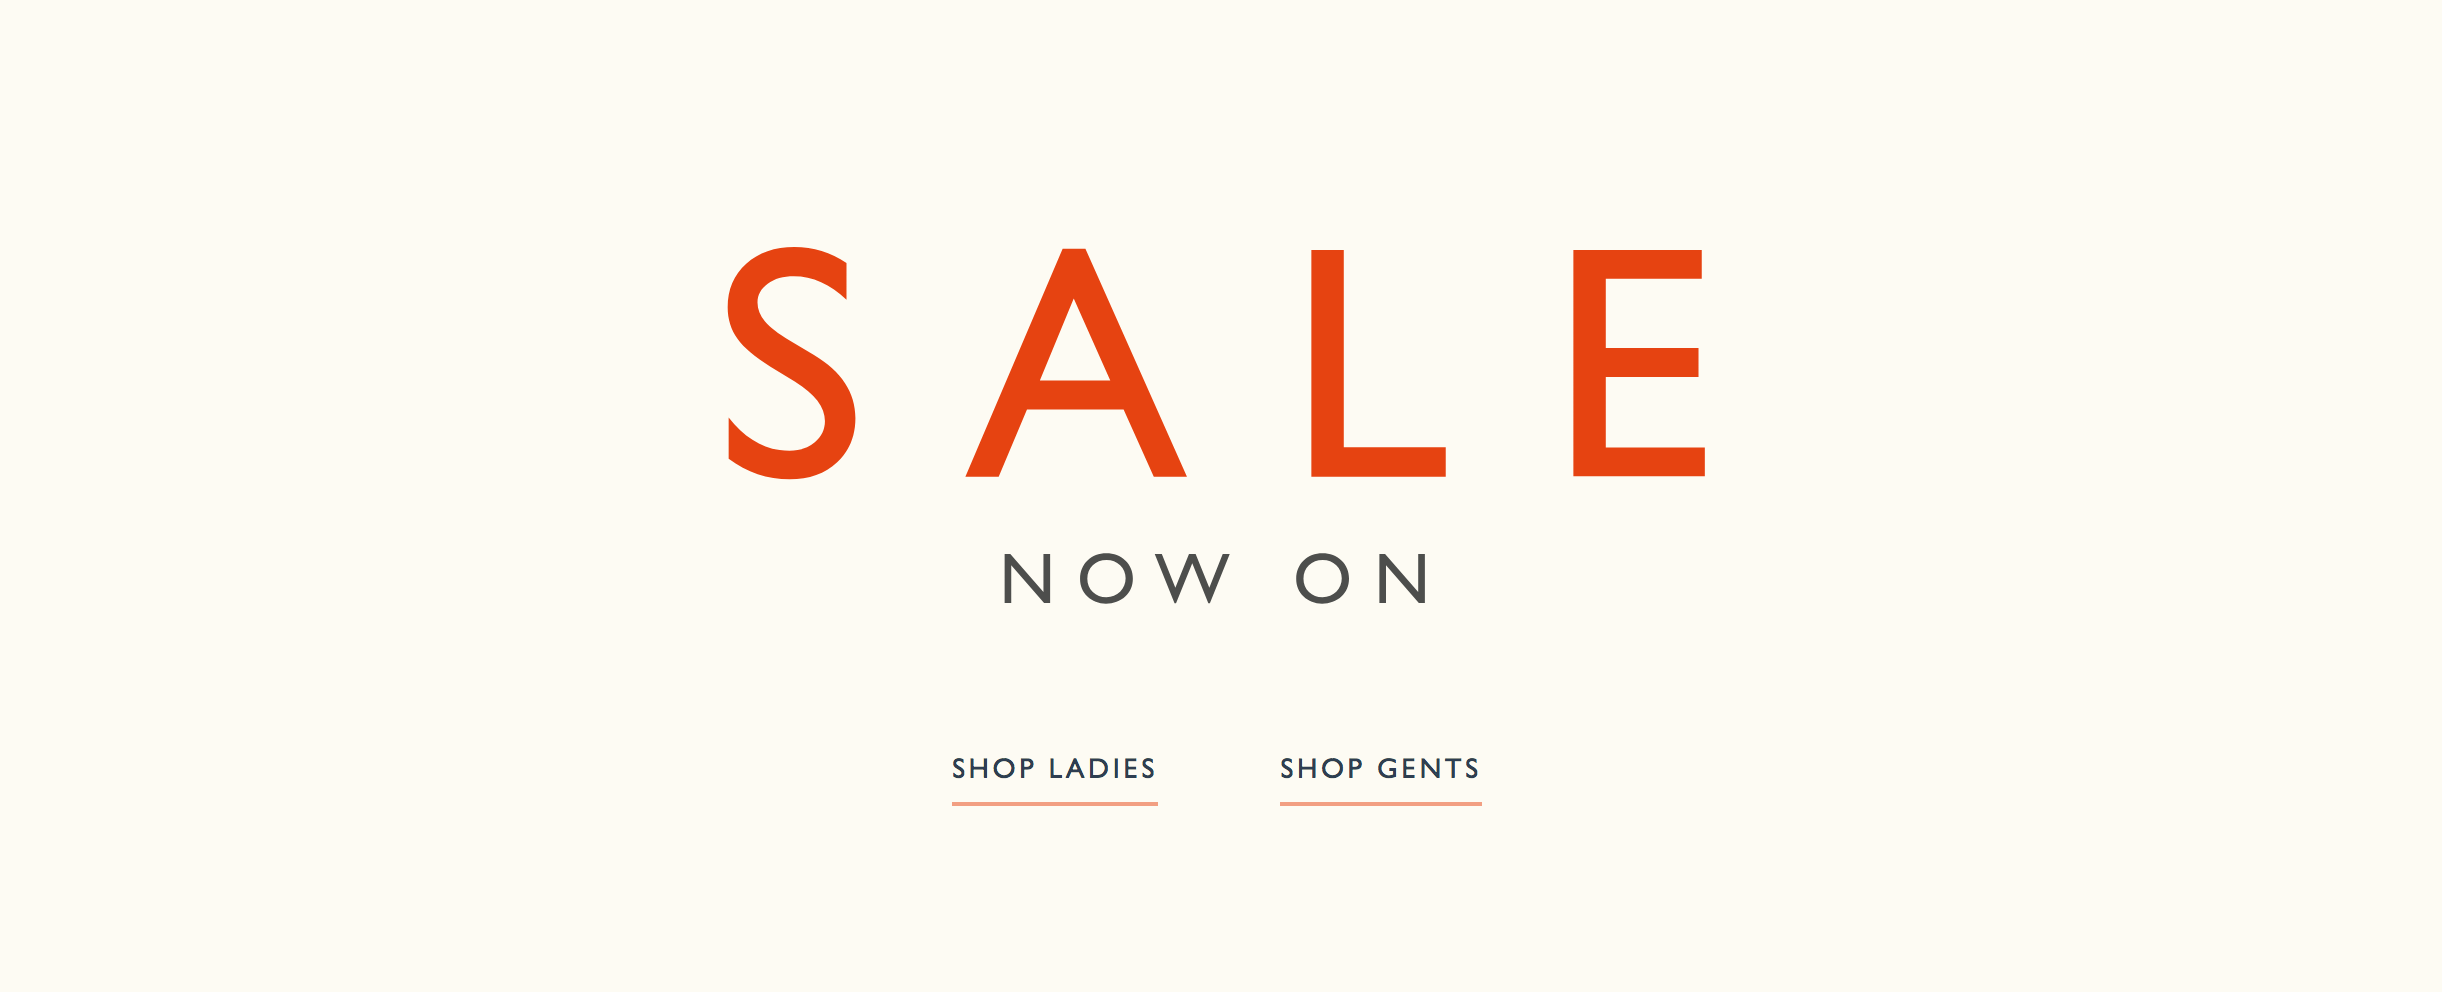 Jack Wills Jack Wills: Sale up to 50% off ladies and gents clothing